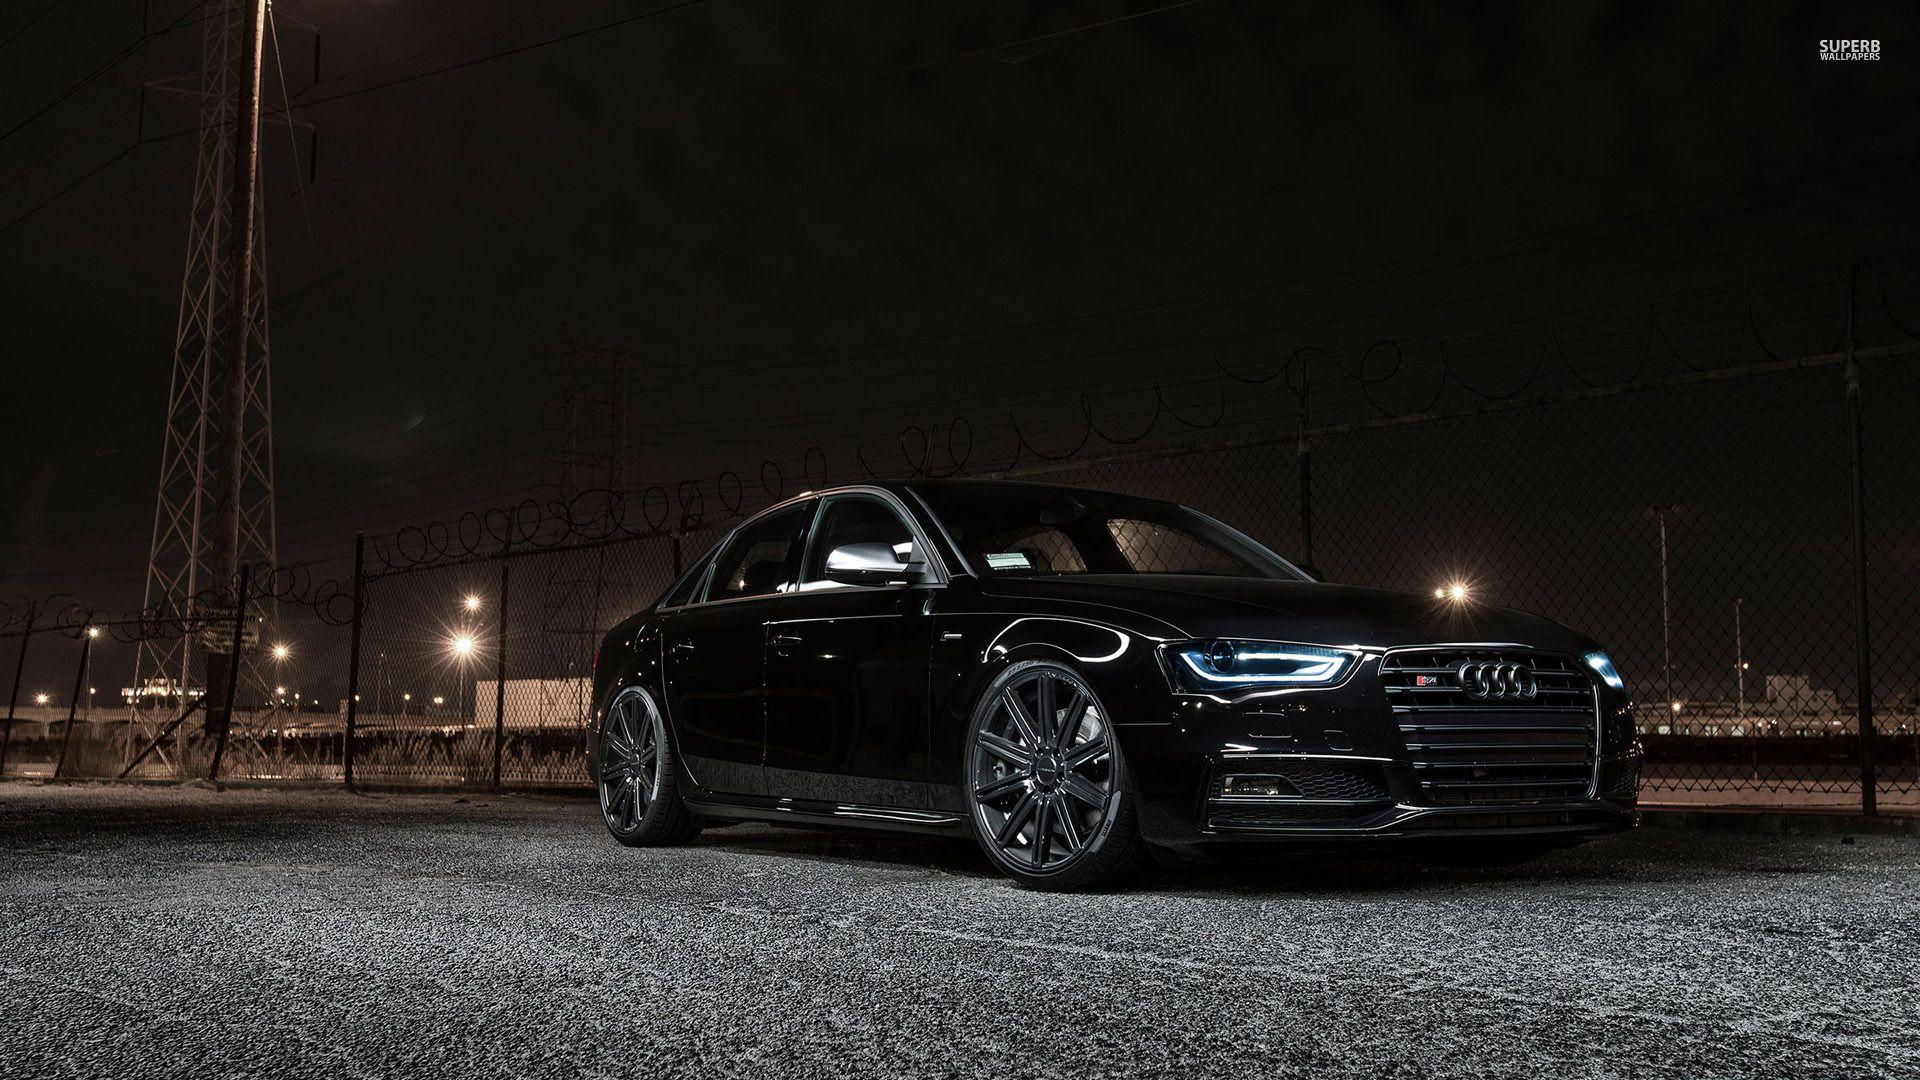 Audi s4 wallpapers Group